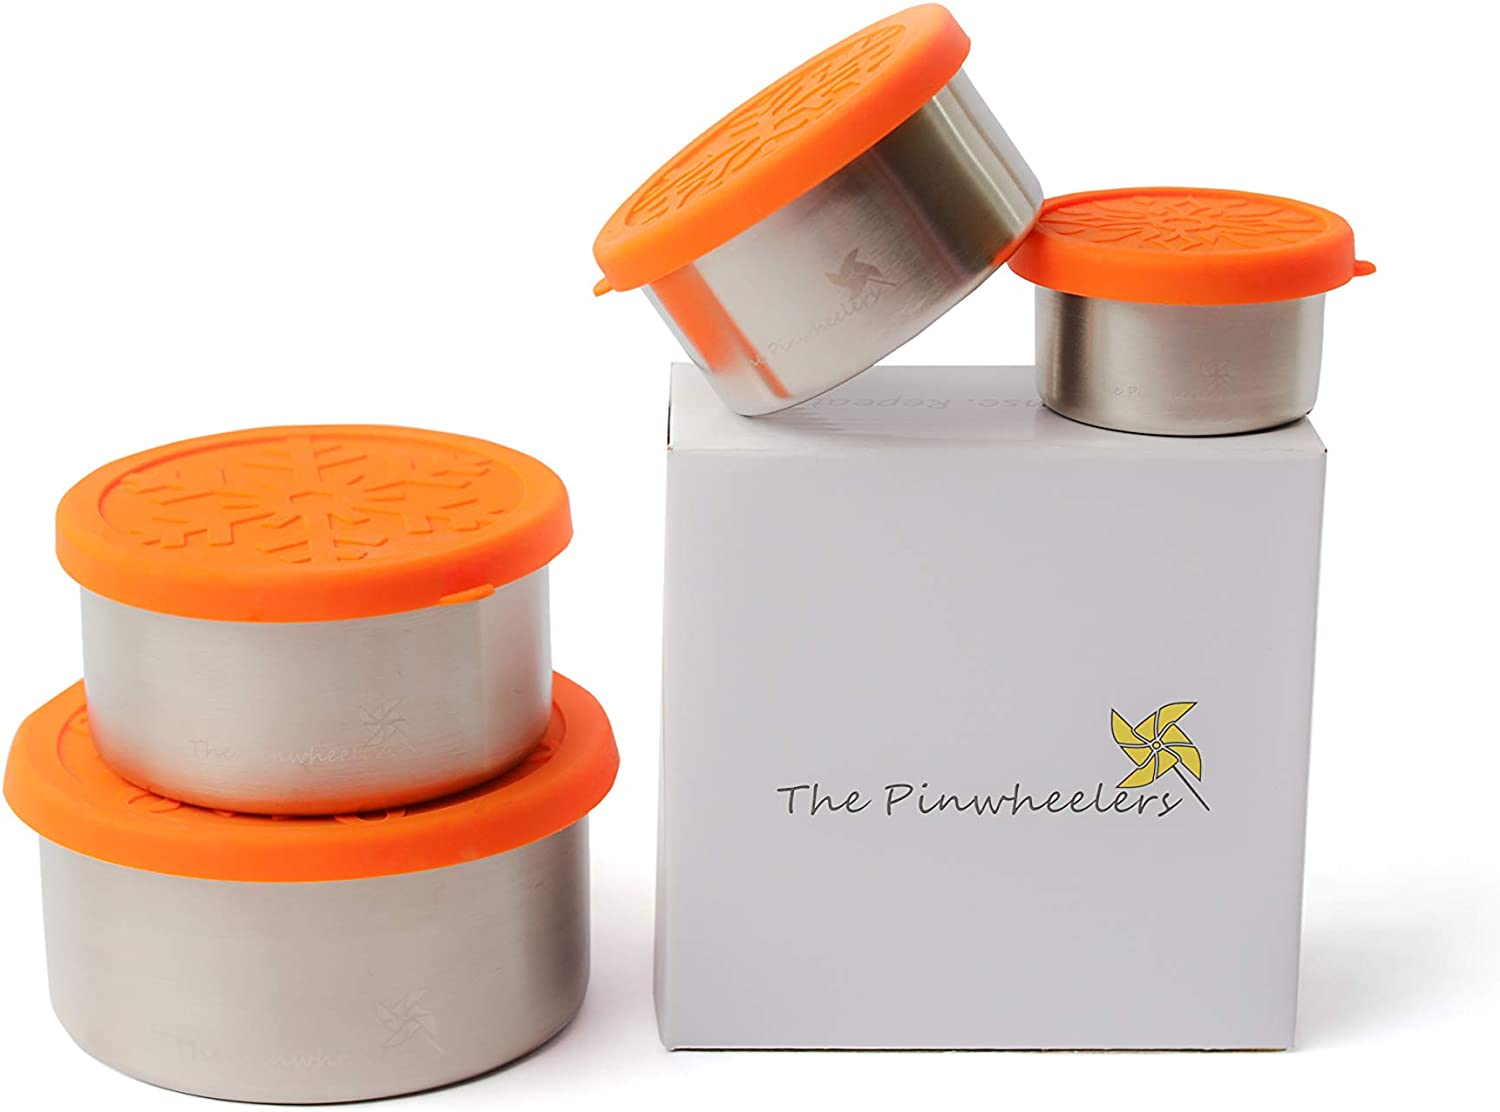 The Pinwheelers Nestable Quad | Stackable Stainless Steel Food Storage Containers | Set of 4 with 100% Leakproof Silicone Lids | Portable, Reusable, EcoFriendly, Plastic Free (Orange Lid)